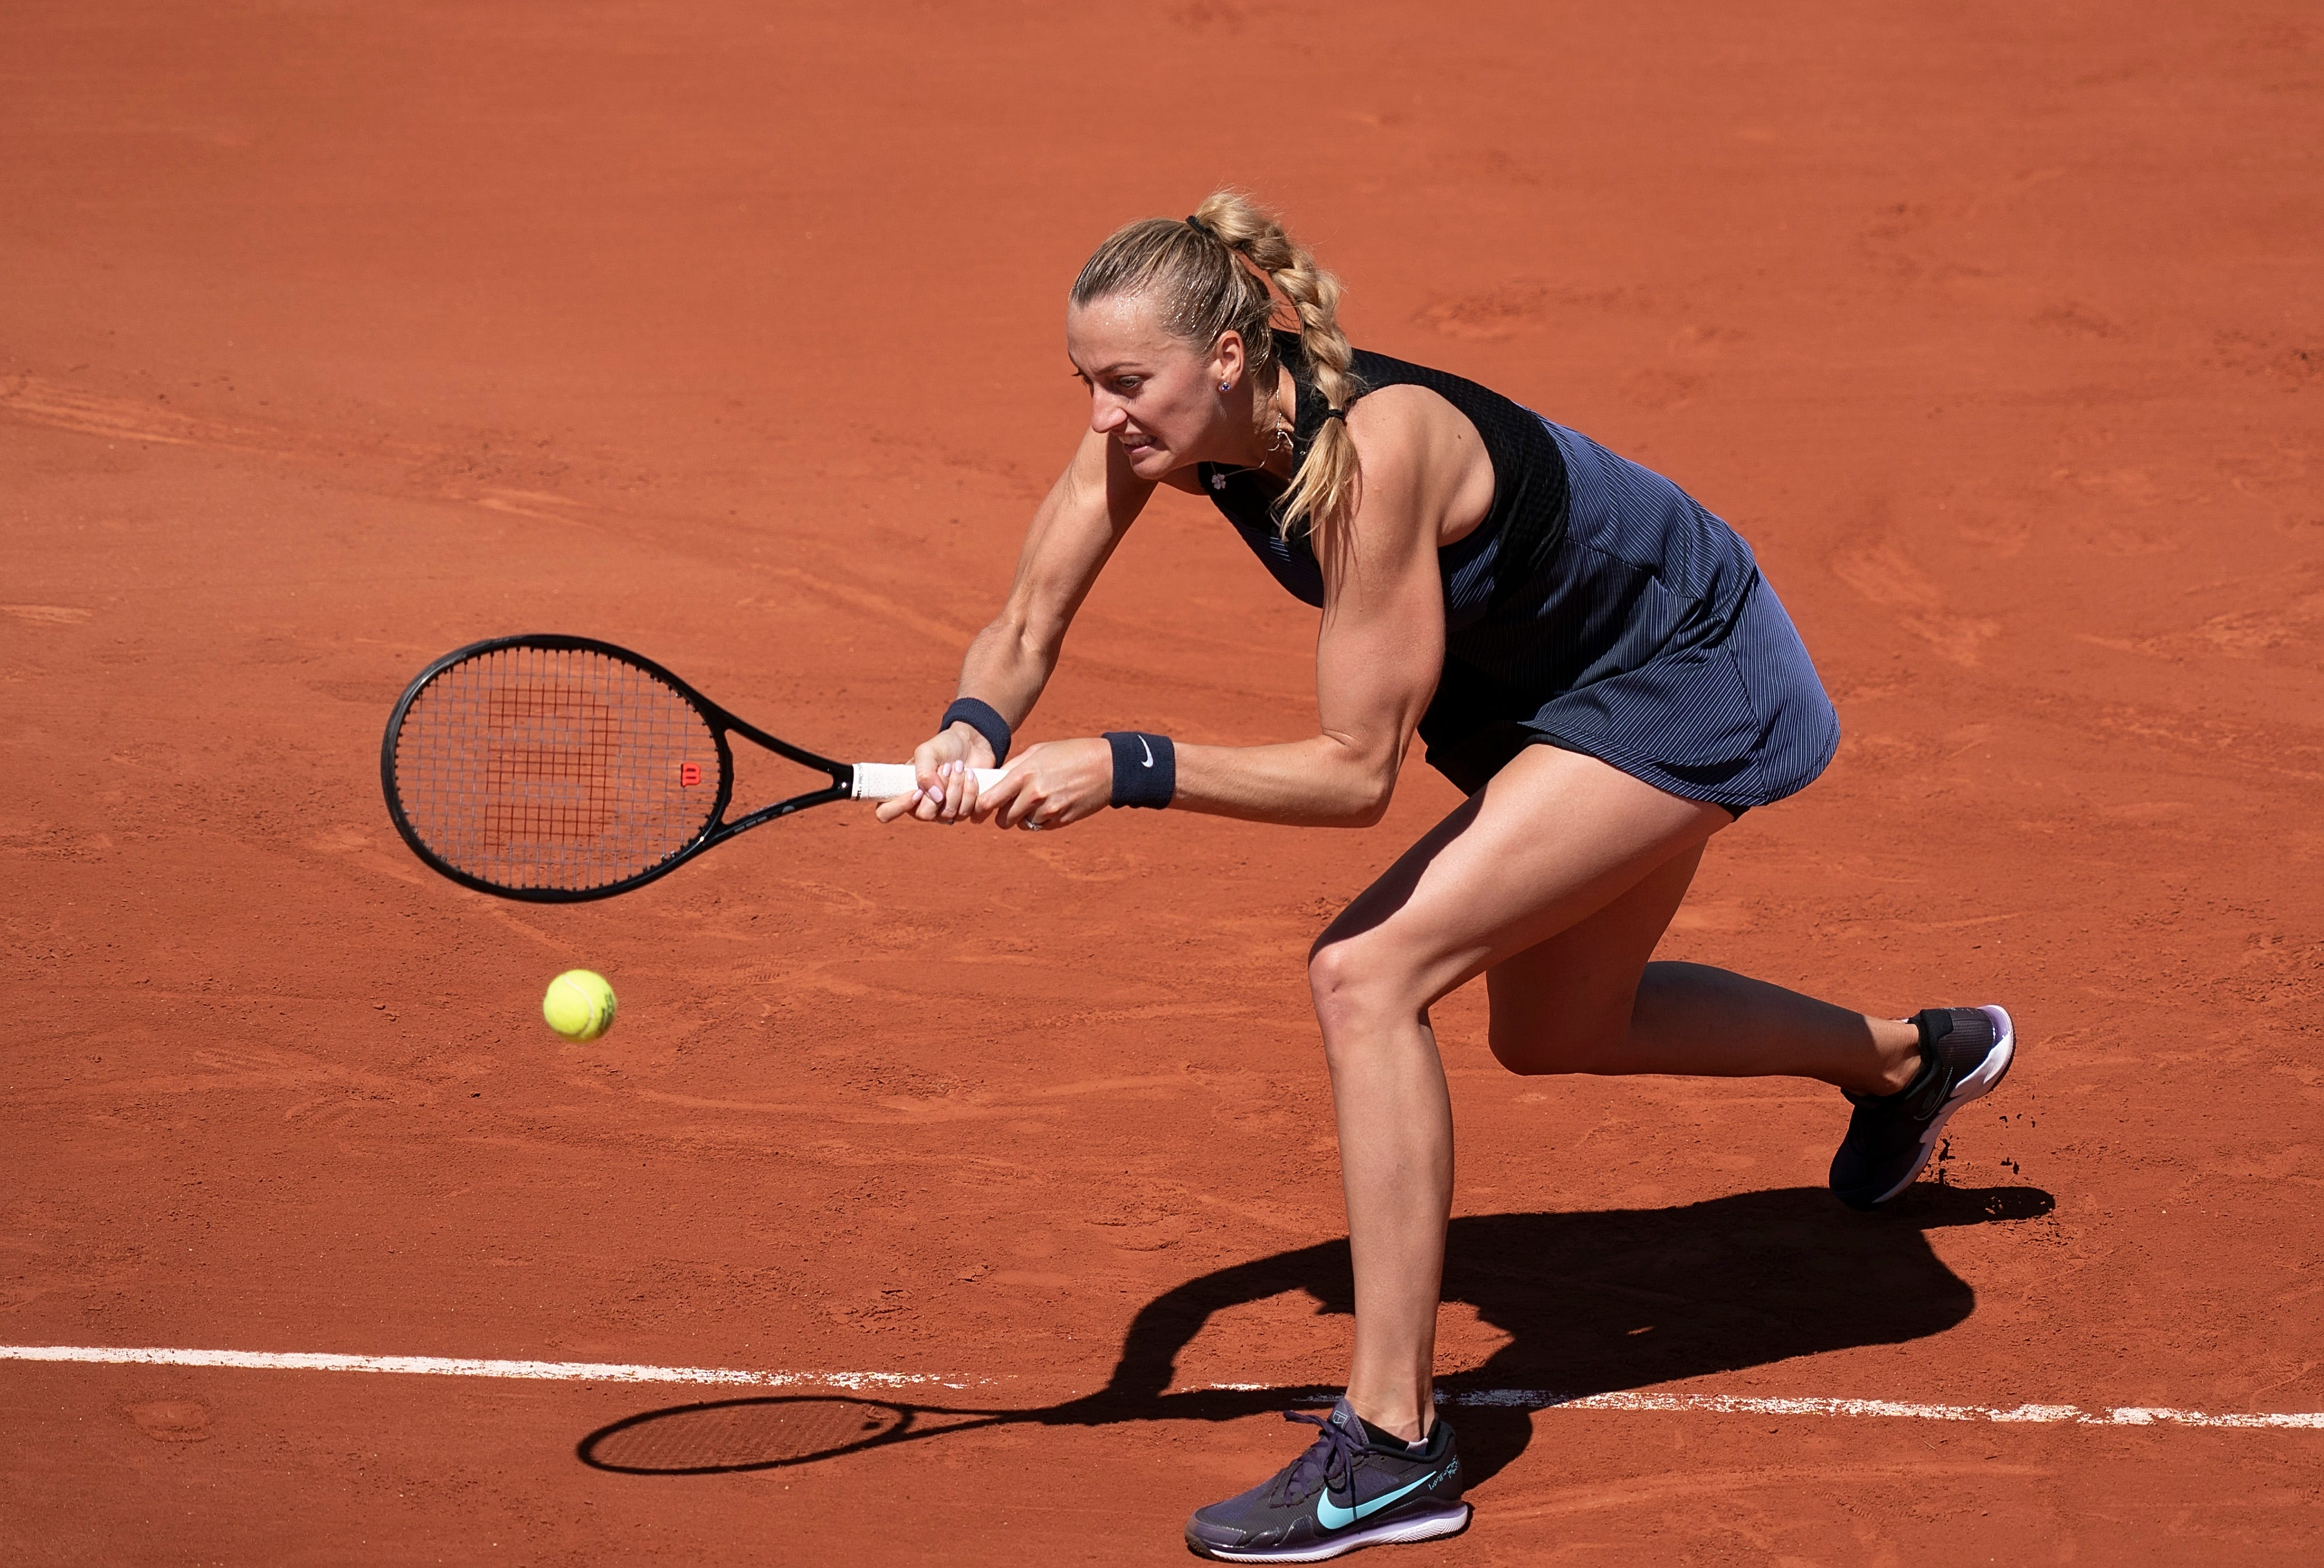 Petra Kvitová suffers ankle injury during media requirements, withdraws from French Open